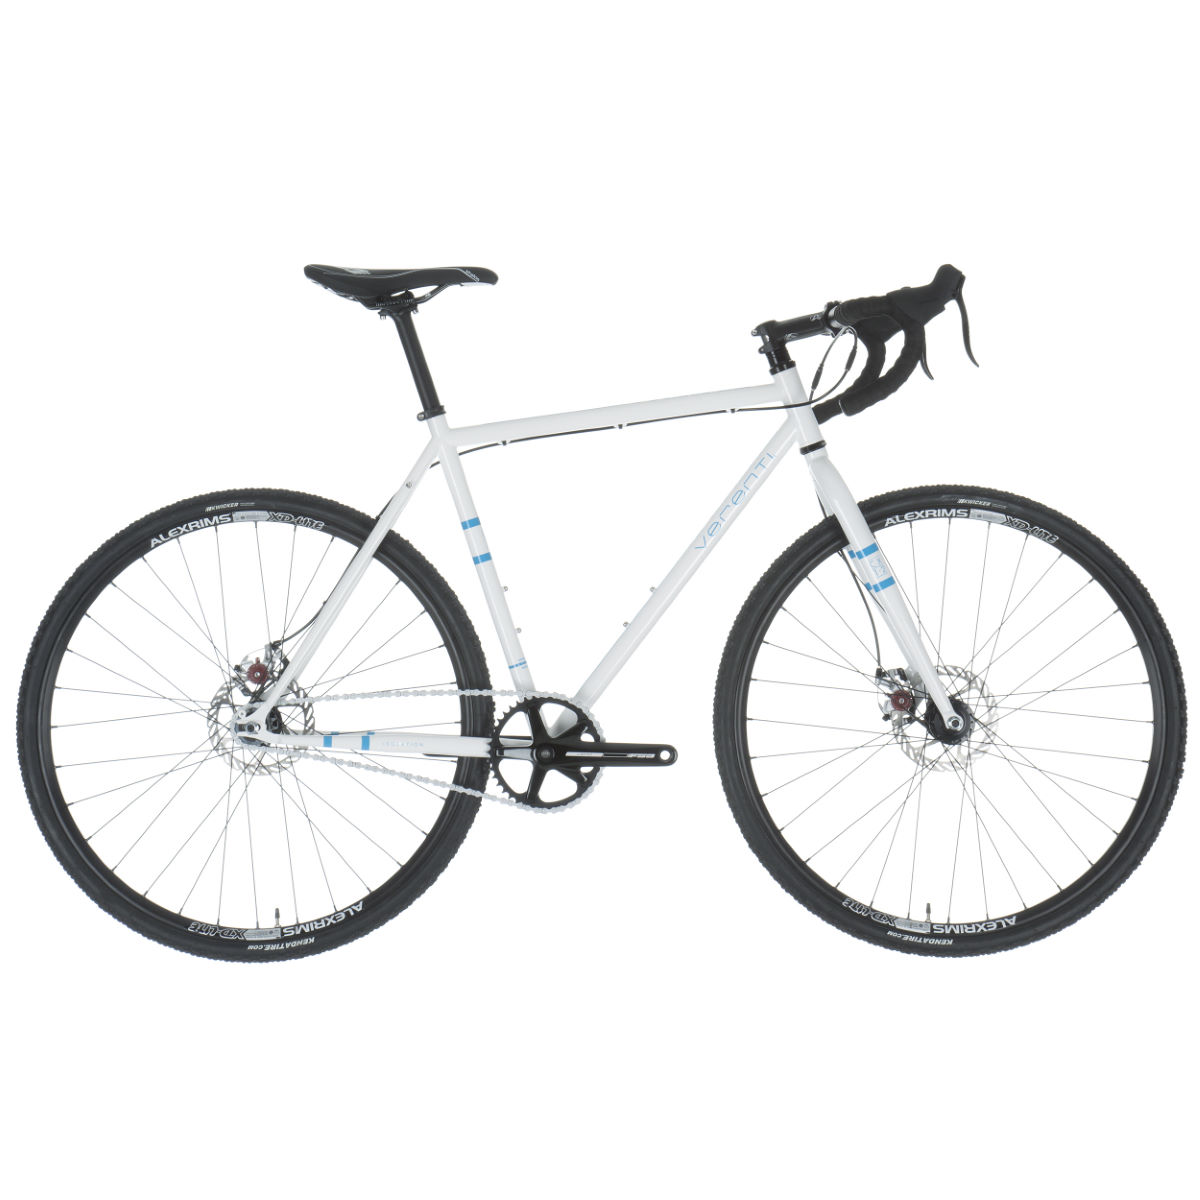 Verenti Isolation CX1.2 Singlespeed 2015